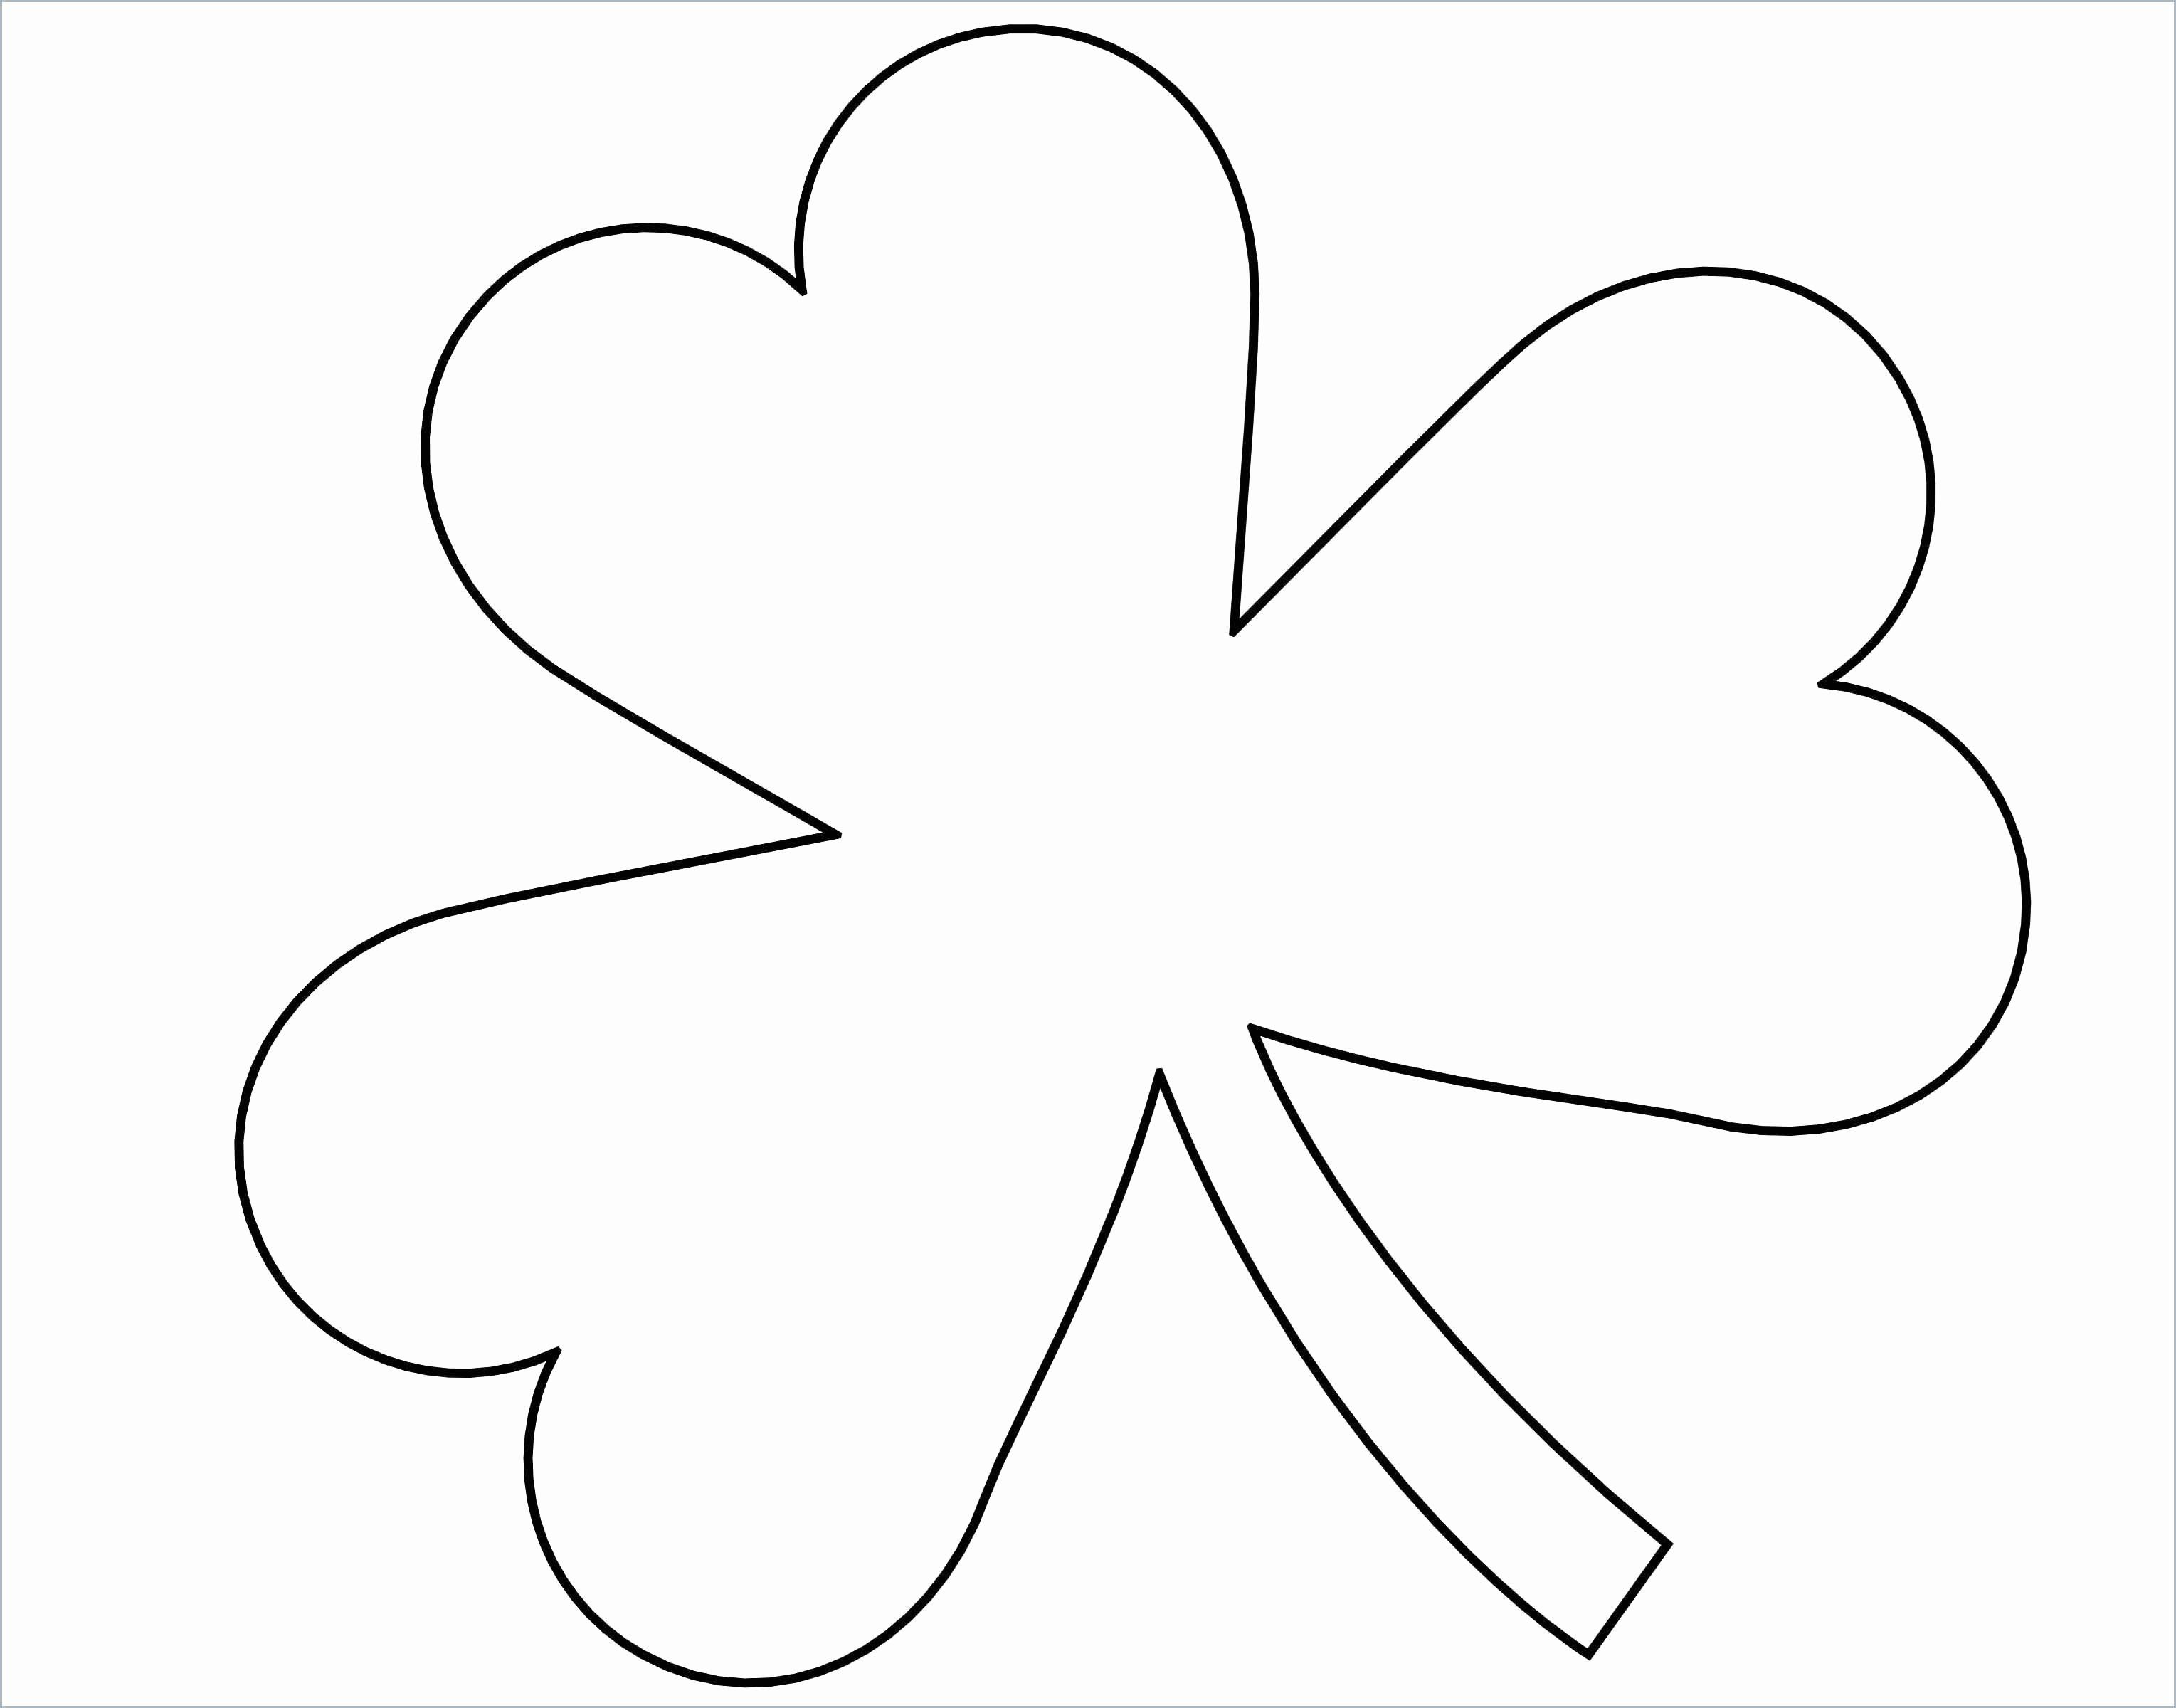 Thanksgiving Pumpkin Coloring Pages New 55 New Free Coloring Sheets Shamrock Template Leaf Coloring Page Owl Coloring Pages